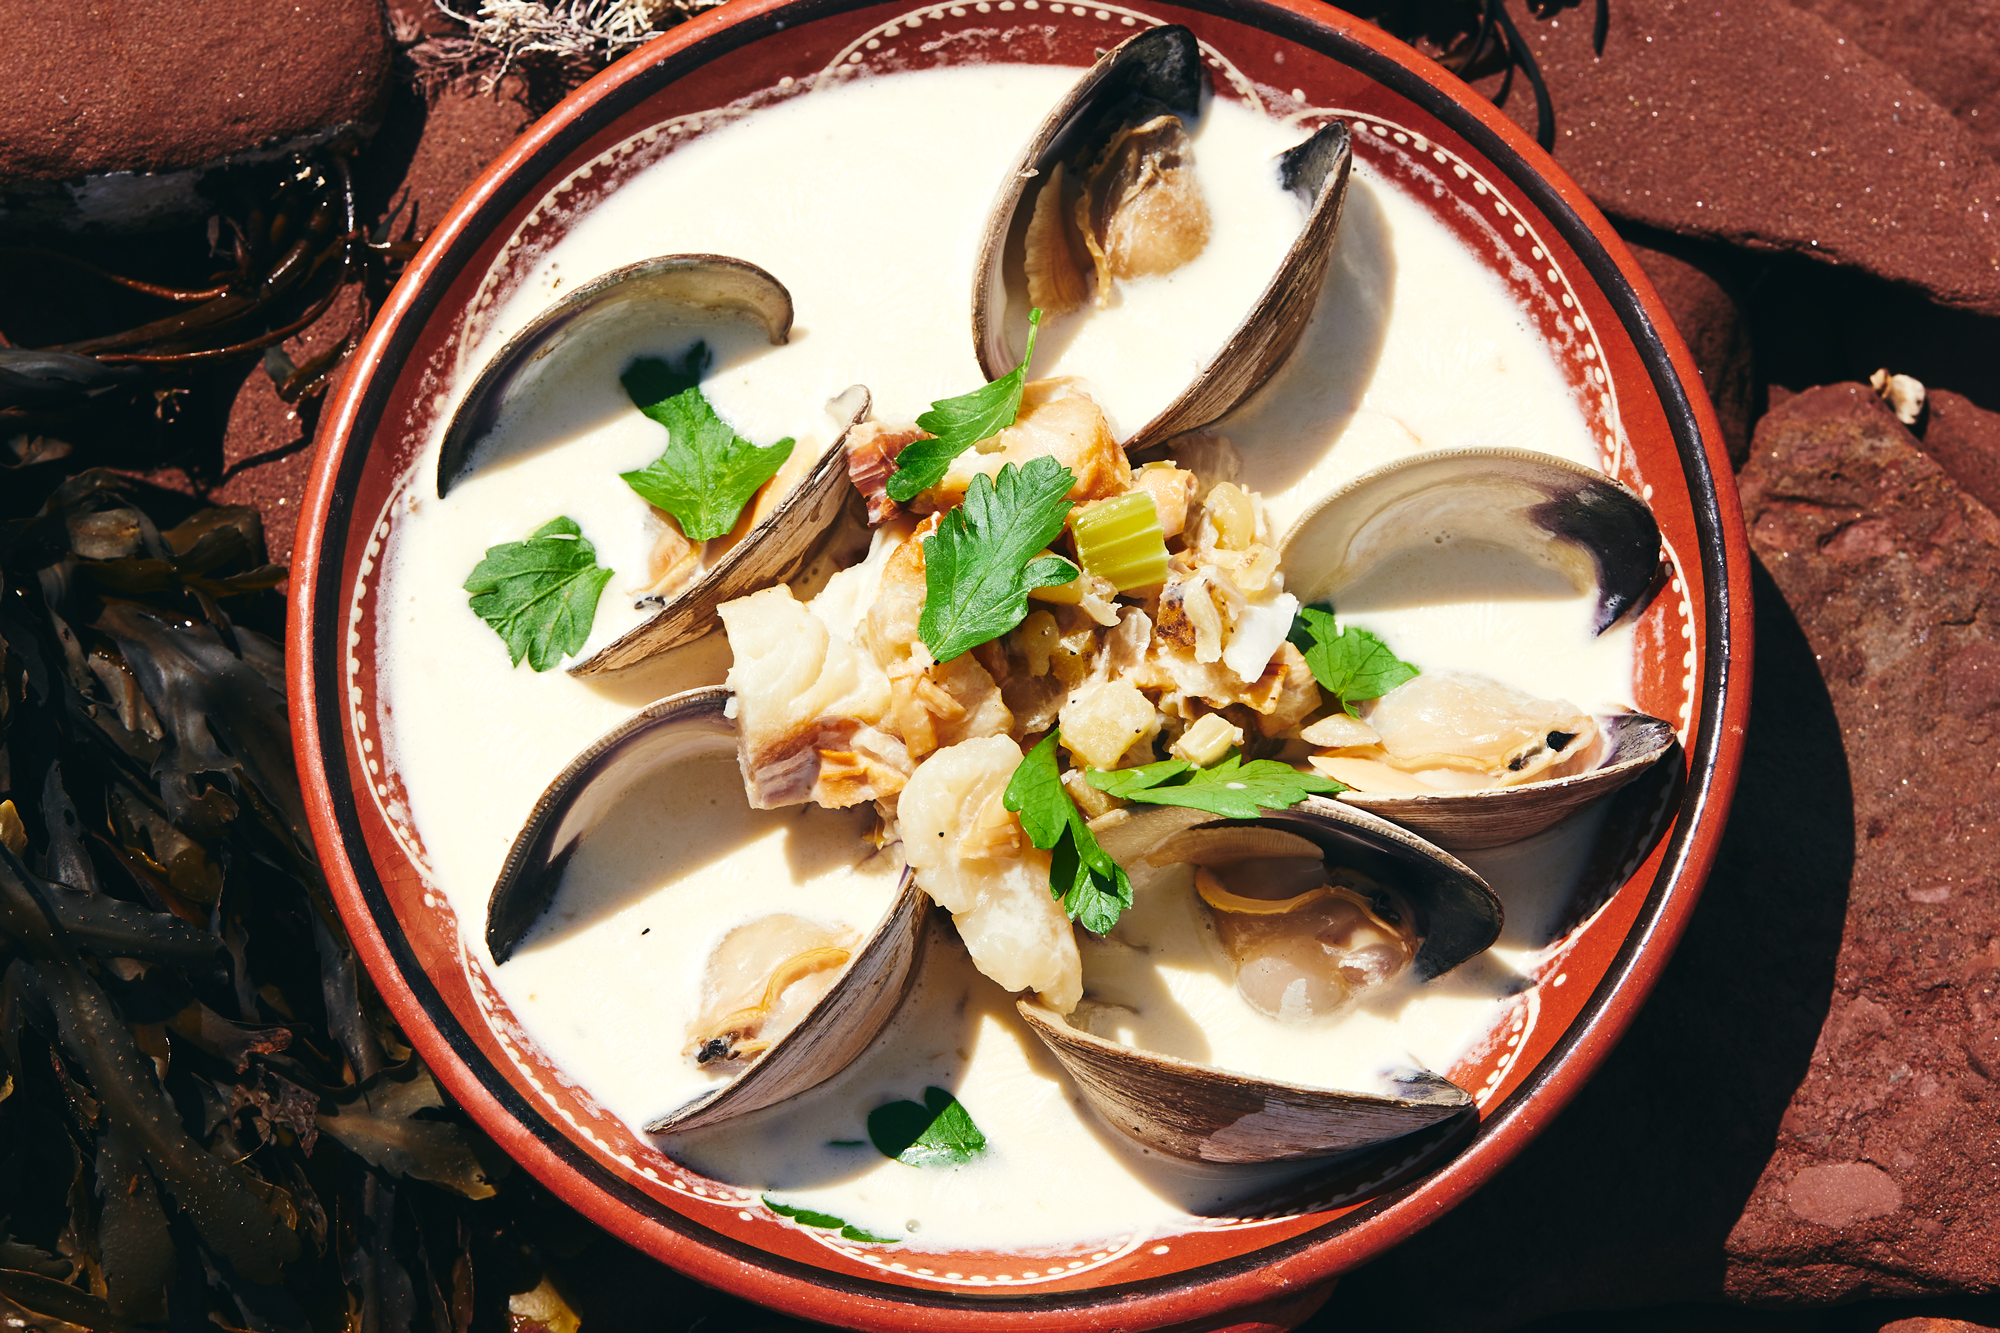 PEI Style Smoky Clam Chowder Recipe